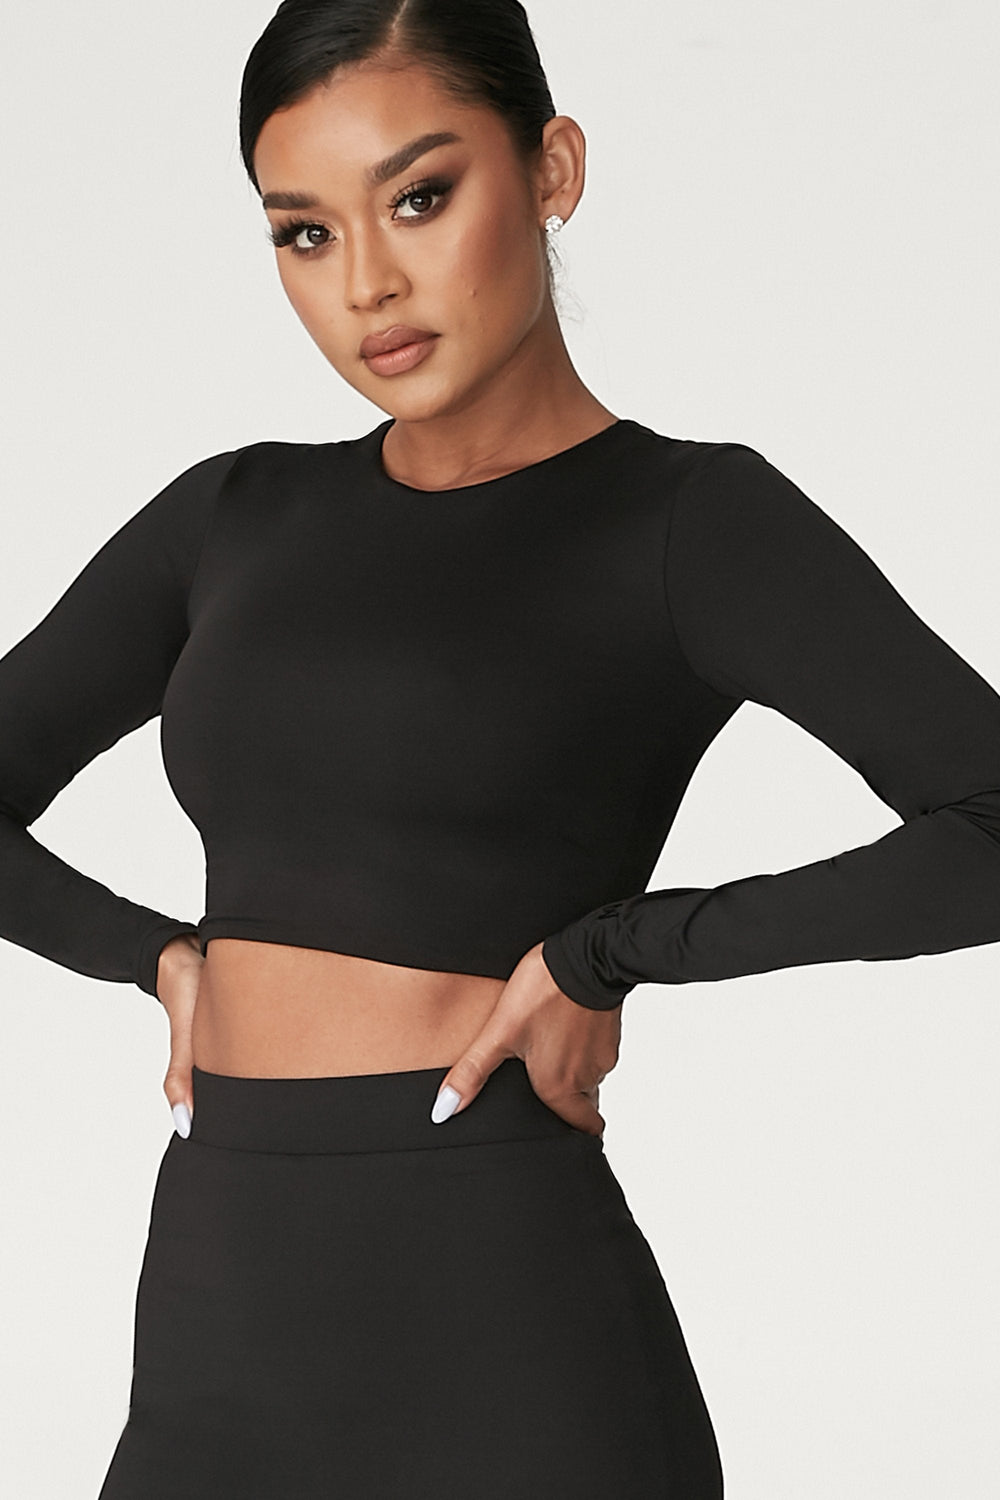 Emely Long Sleeve Crop Top  - Black - MESHKI ?id=12376332664907